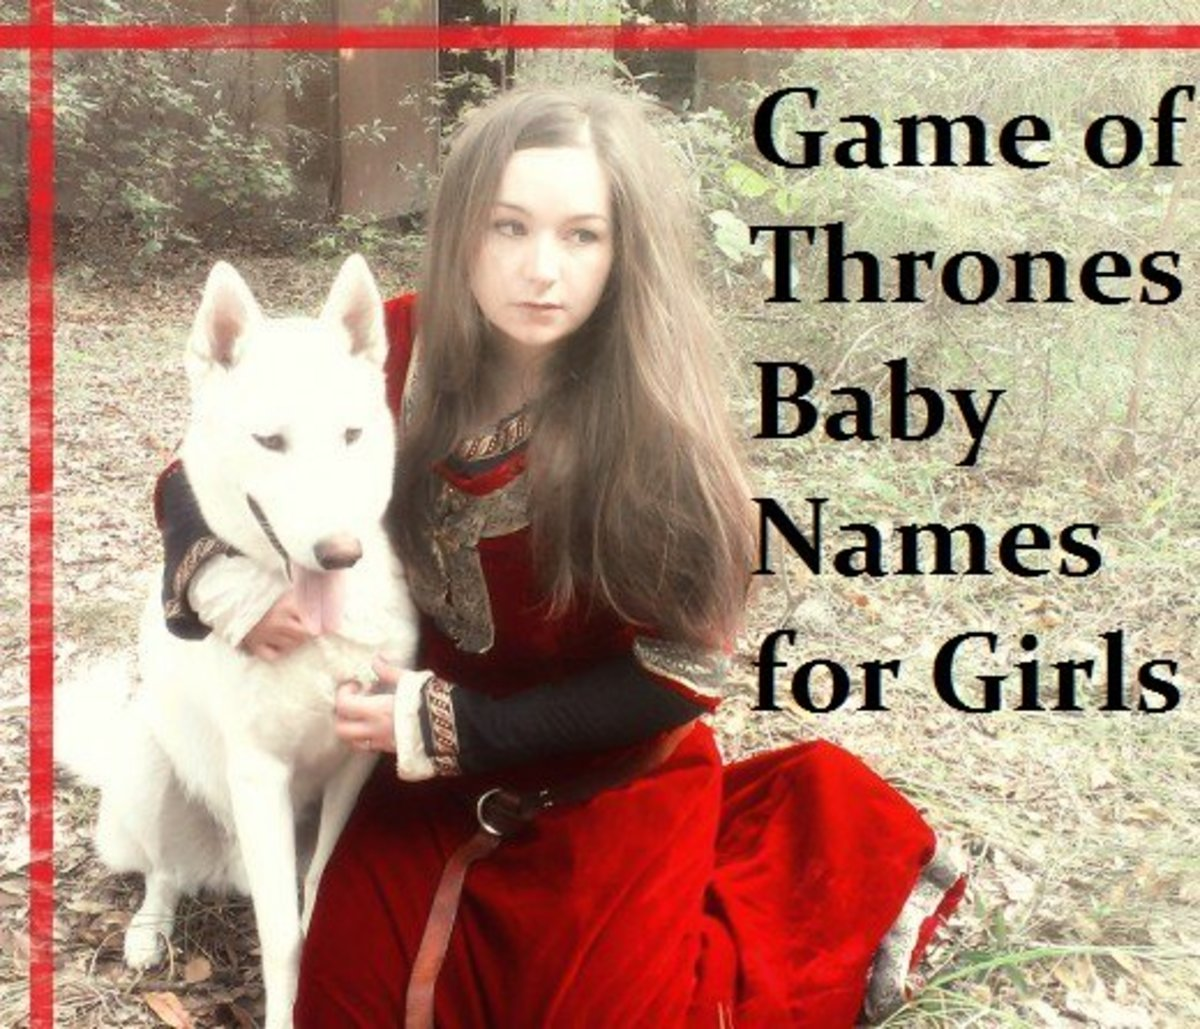 """Game of Thrones"" Baby Names for Girls"